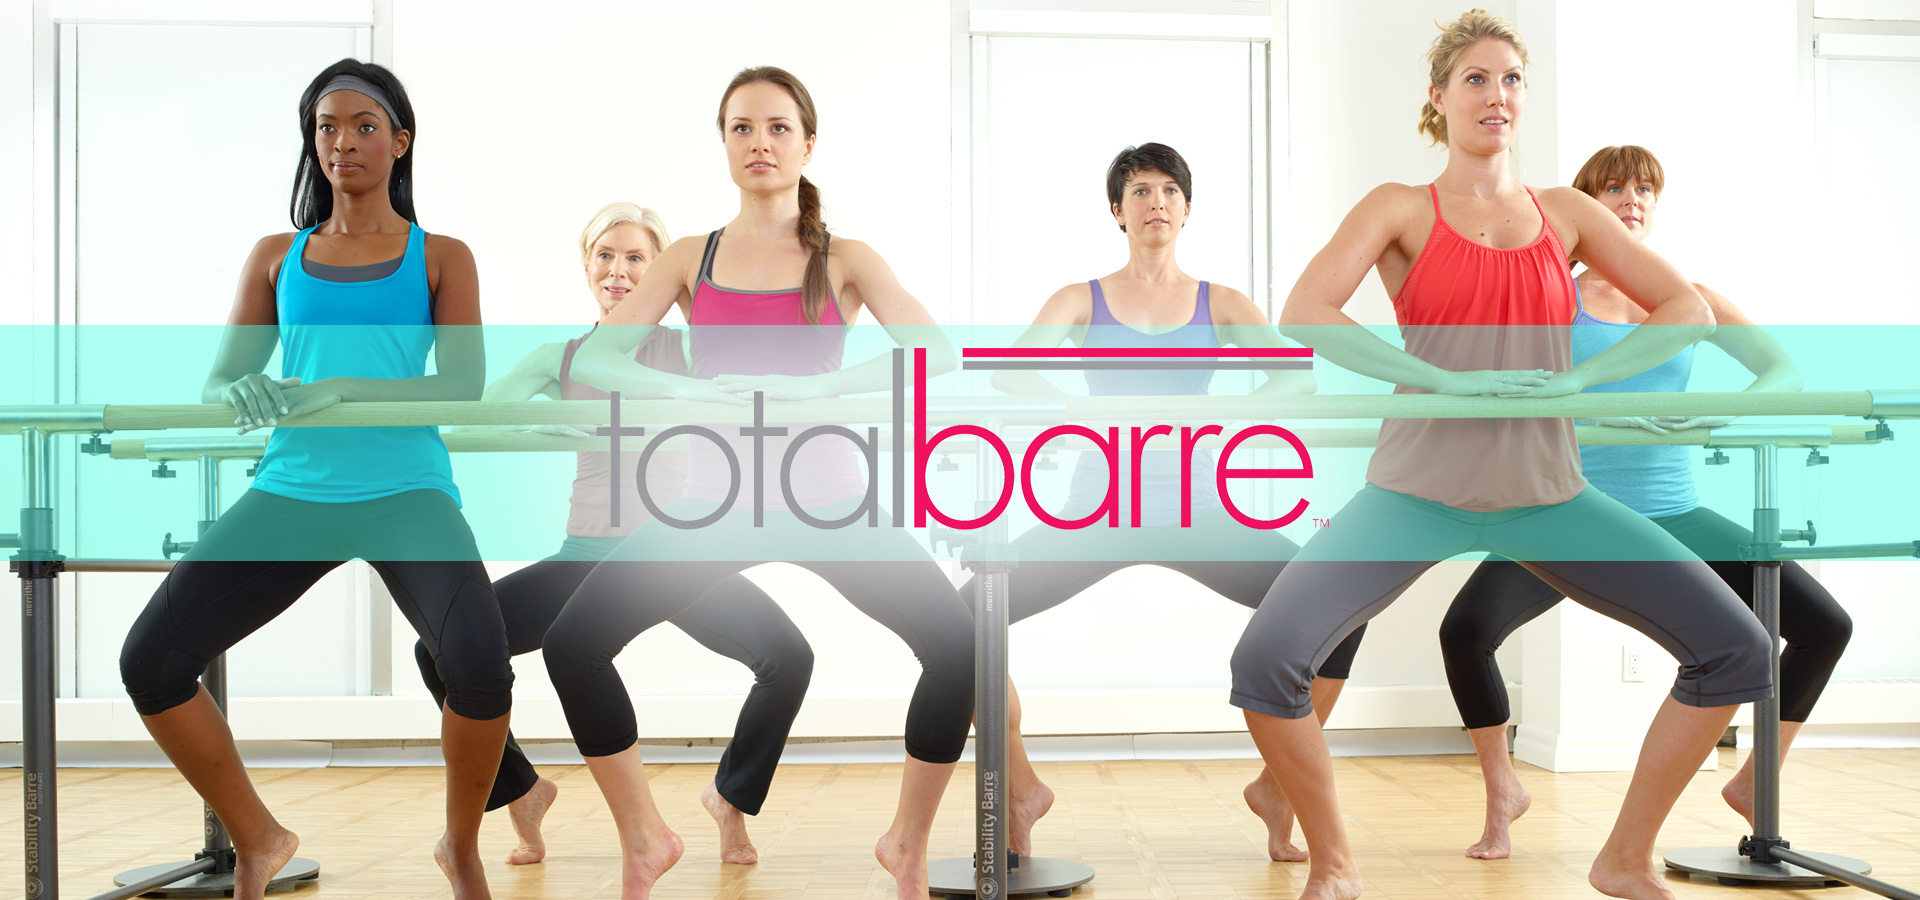 Total Barre